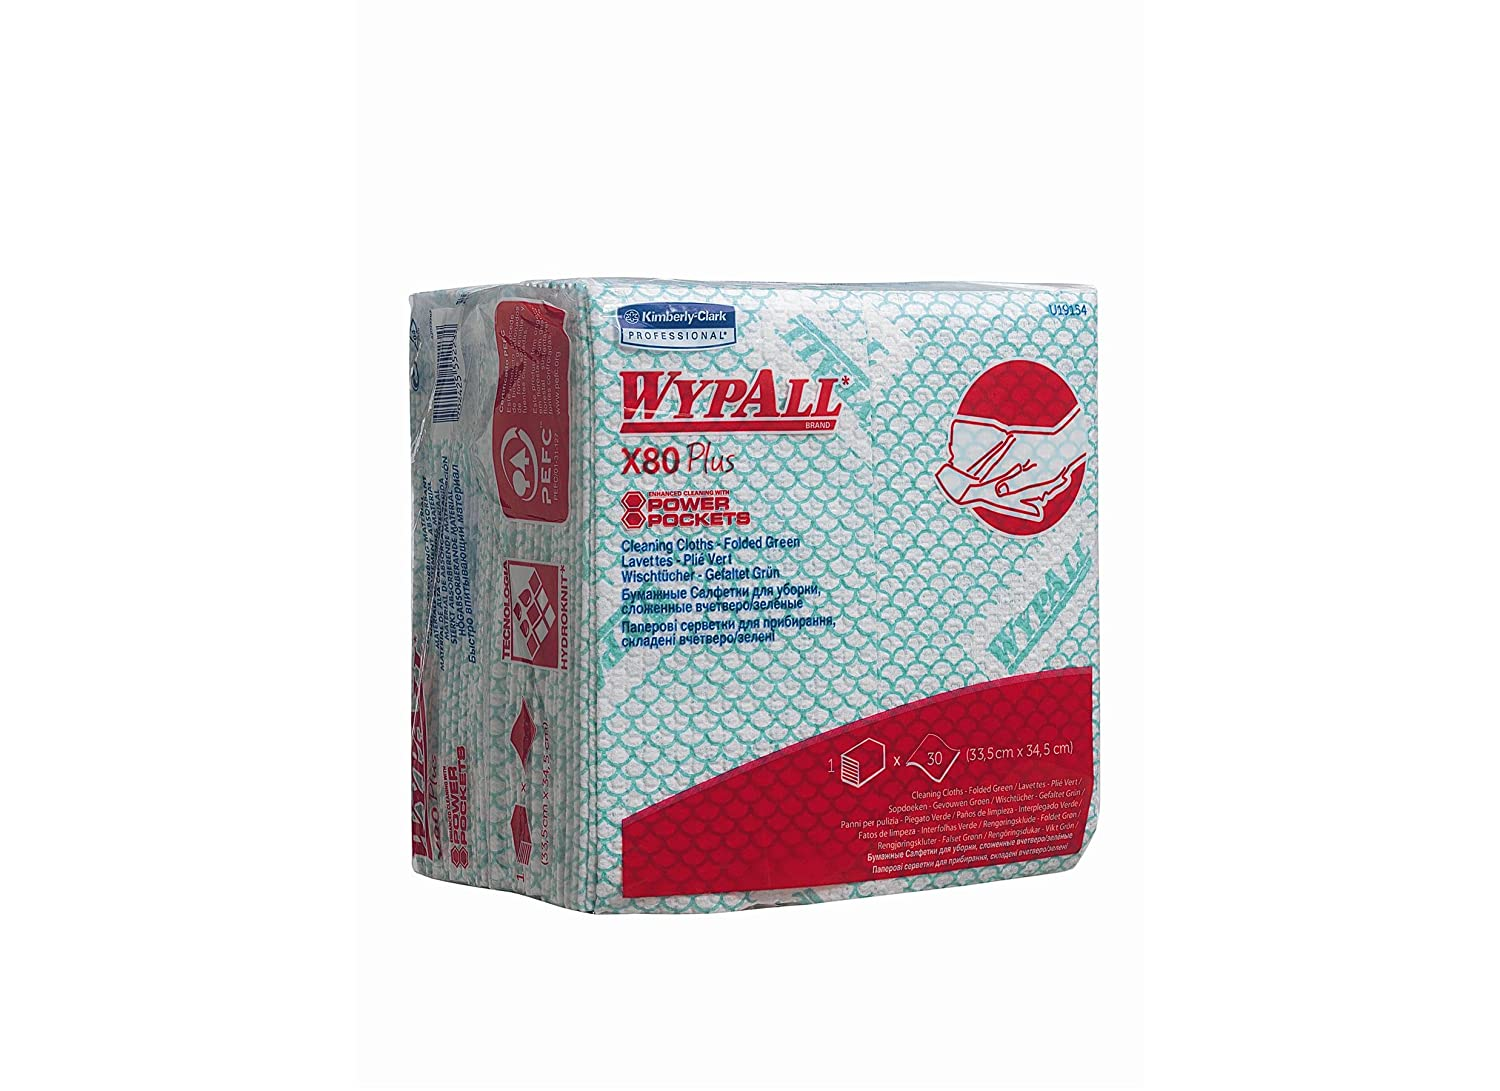 WypAll* X80 Plus Cloths 19154 - 8 packs x 30 quarter-fold, green cloths Kimberly-Clark Professional (EU)